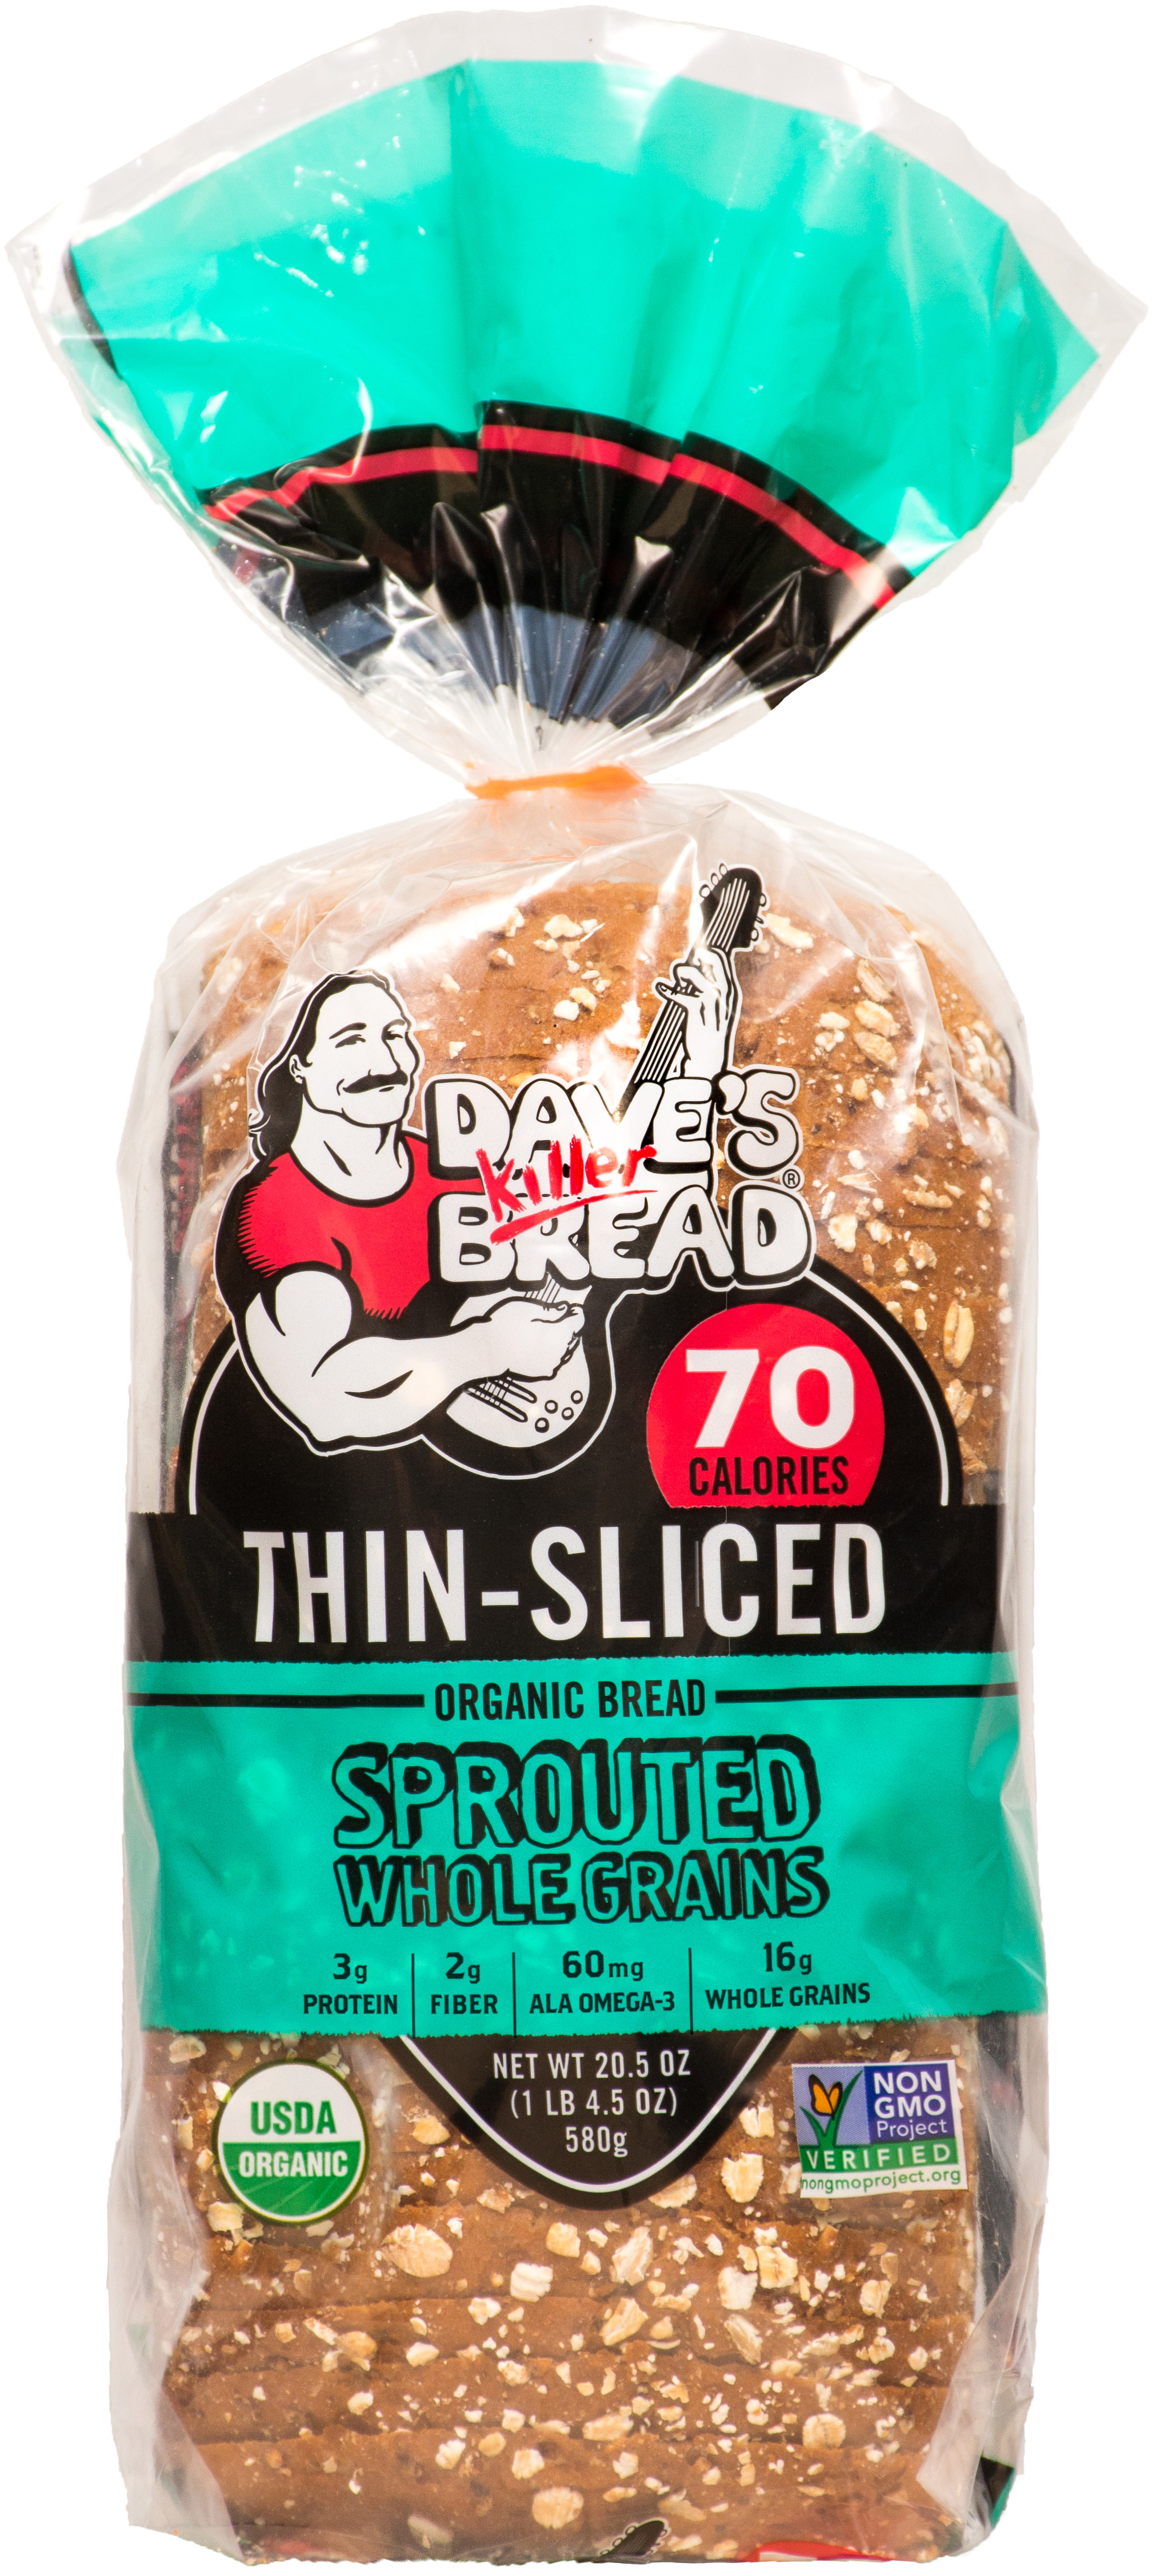 Sprouted Whole Grains Thin-Sliced